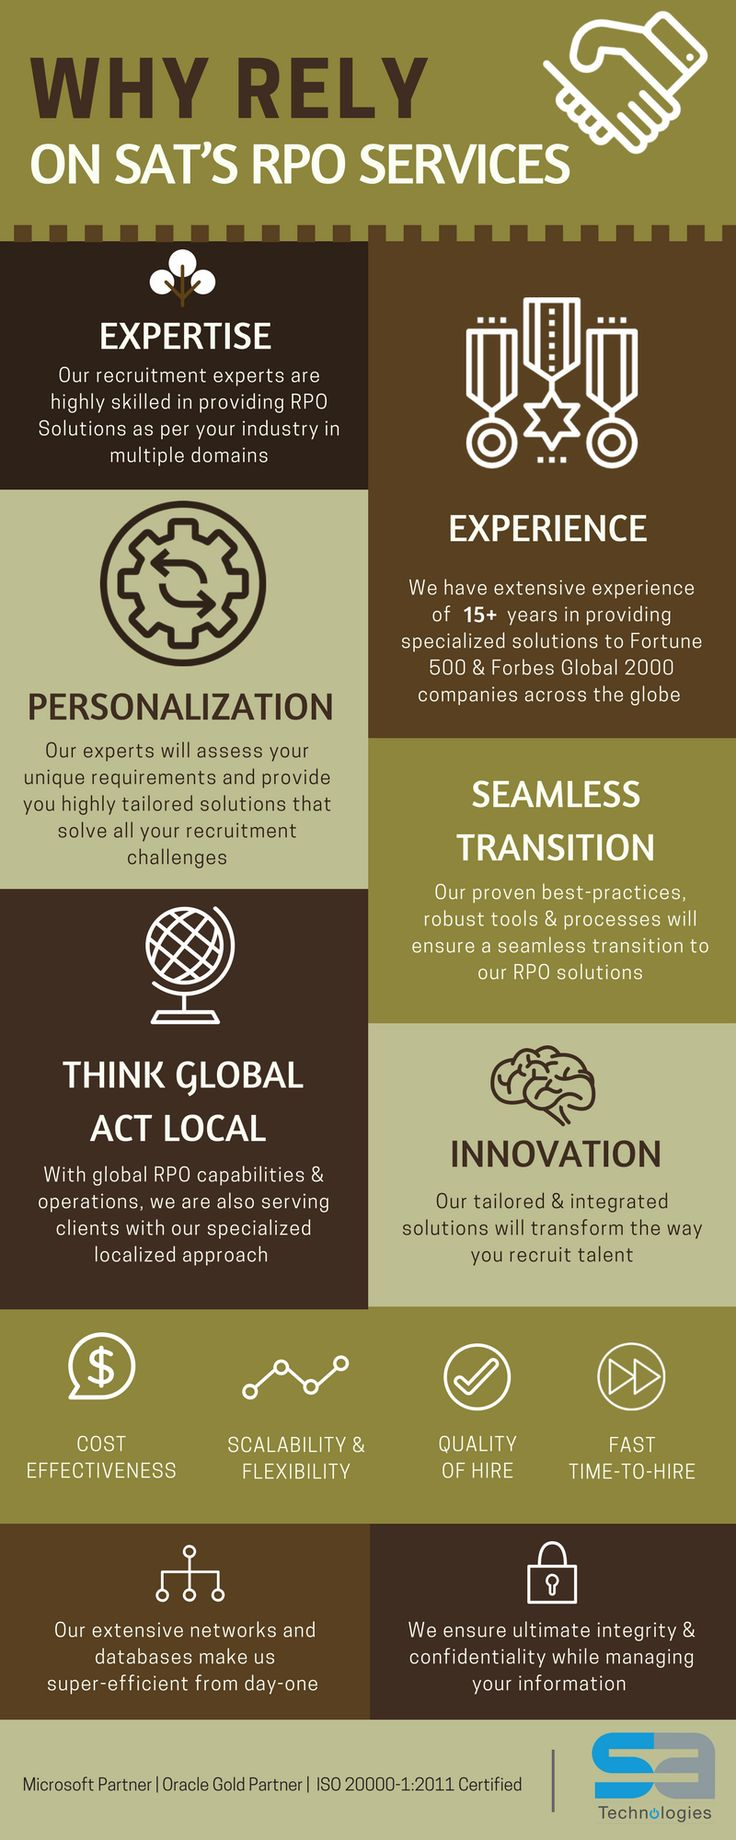 11 best rpo services and solutions india images on pinterest goa why reply on sats rpo services expertise our recruitment expertise is highly skilled in providing rpo services as per your industry in multiple domains xflitez Images